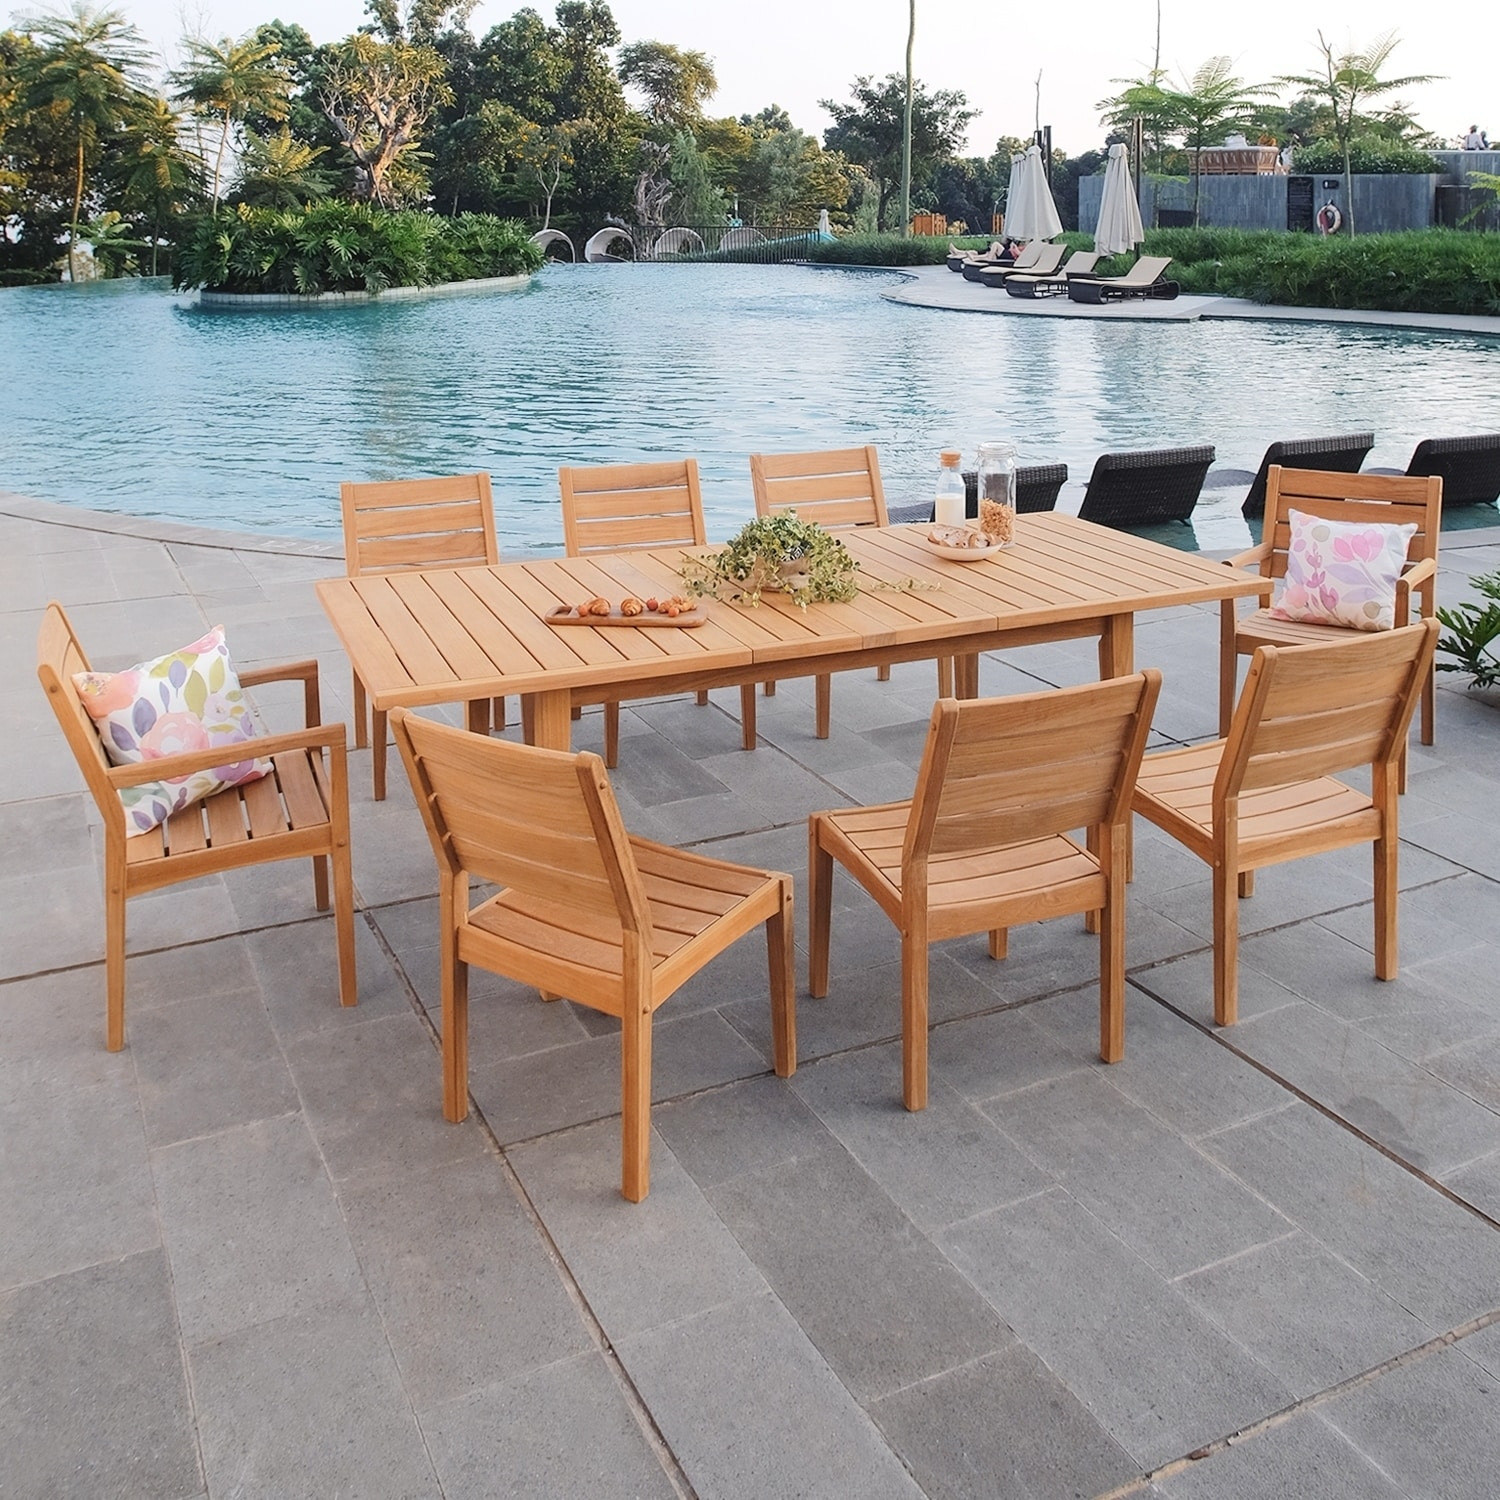 Excellent Cambridge Casual Andrea Teak 9 Piece Extendable Table Dining Set Inzonedesignstudio Interior Chair Design Inzonedesignstudiocom